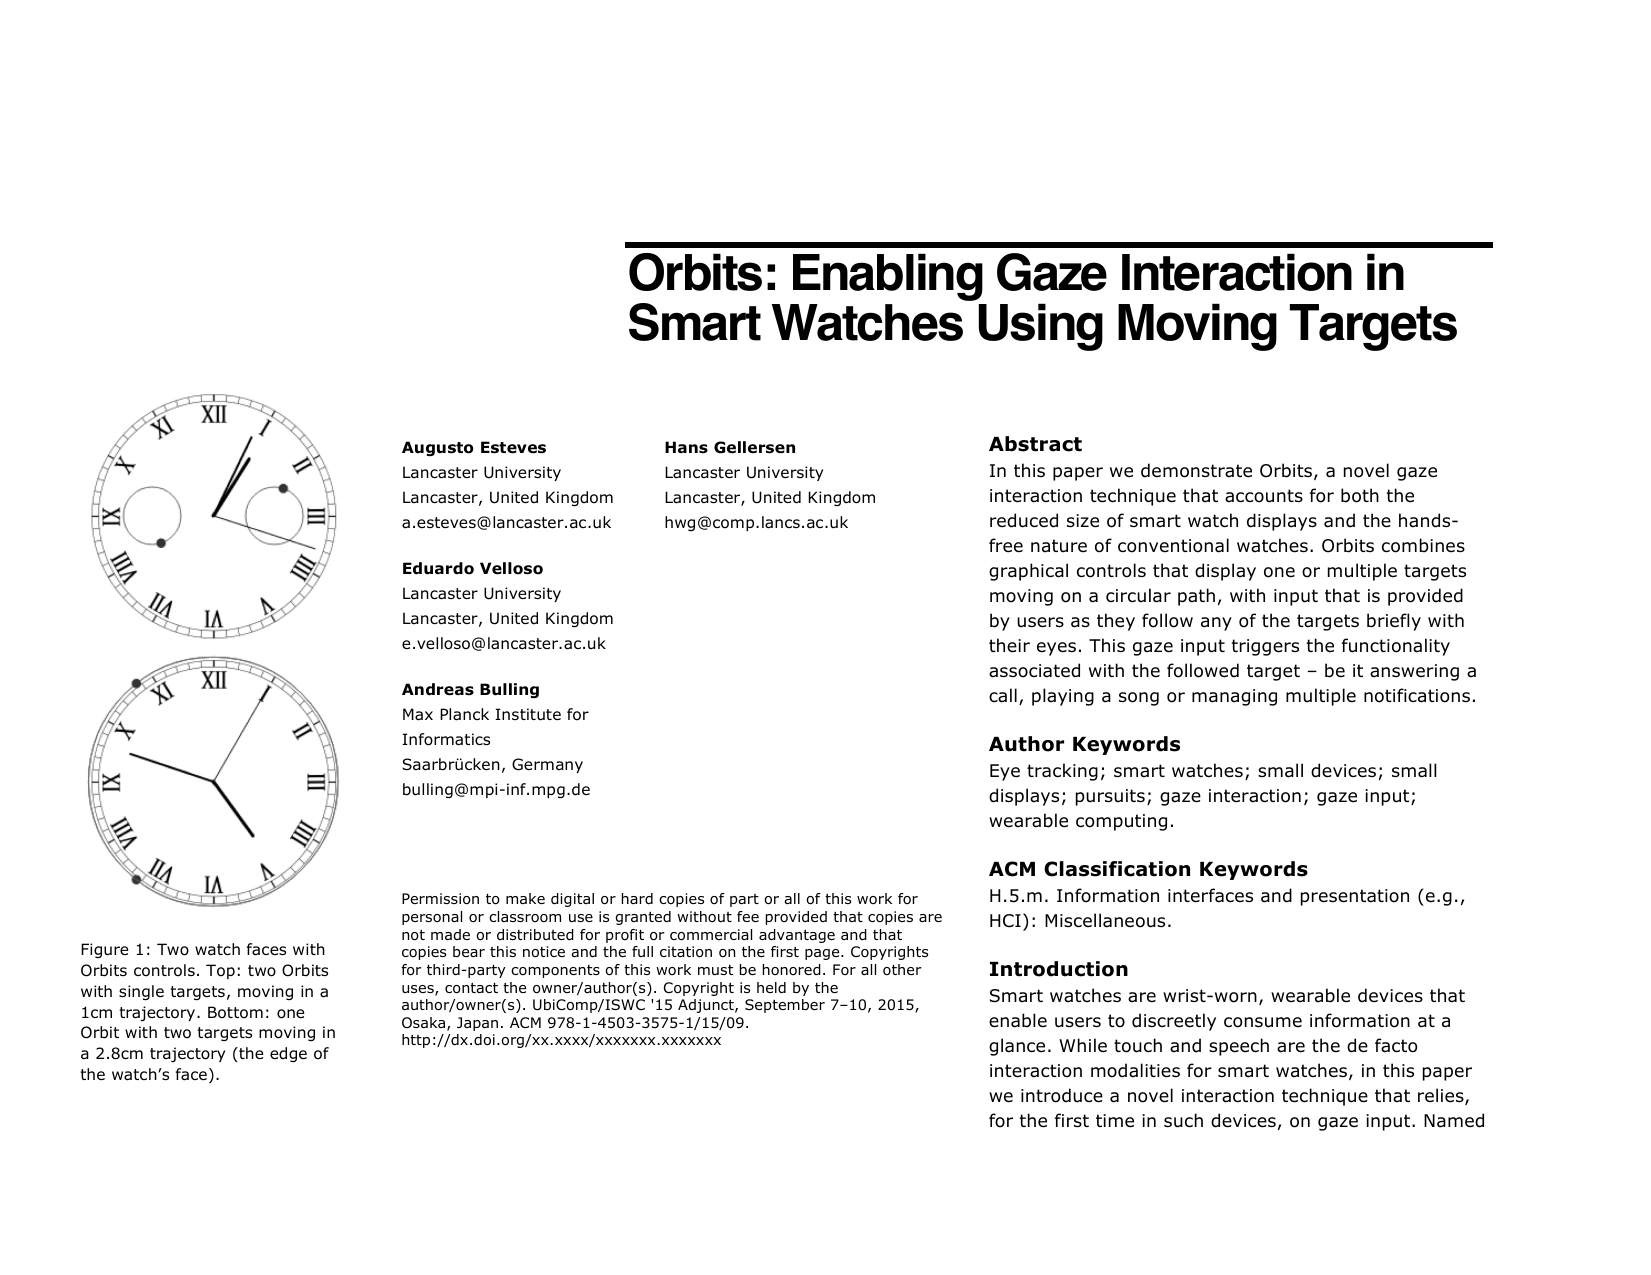 Orbits: Enabling Gaze Interaction in Smart Watches using Moving Targets